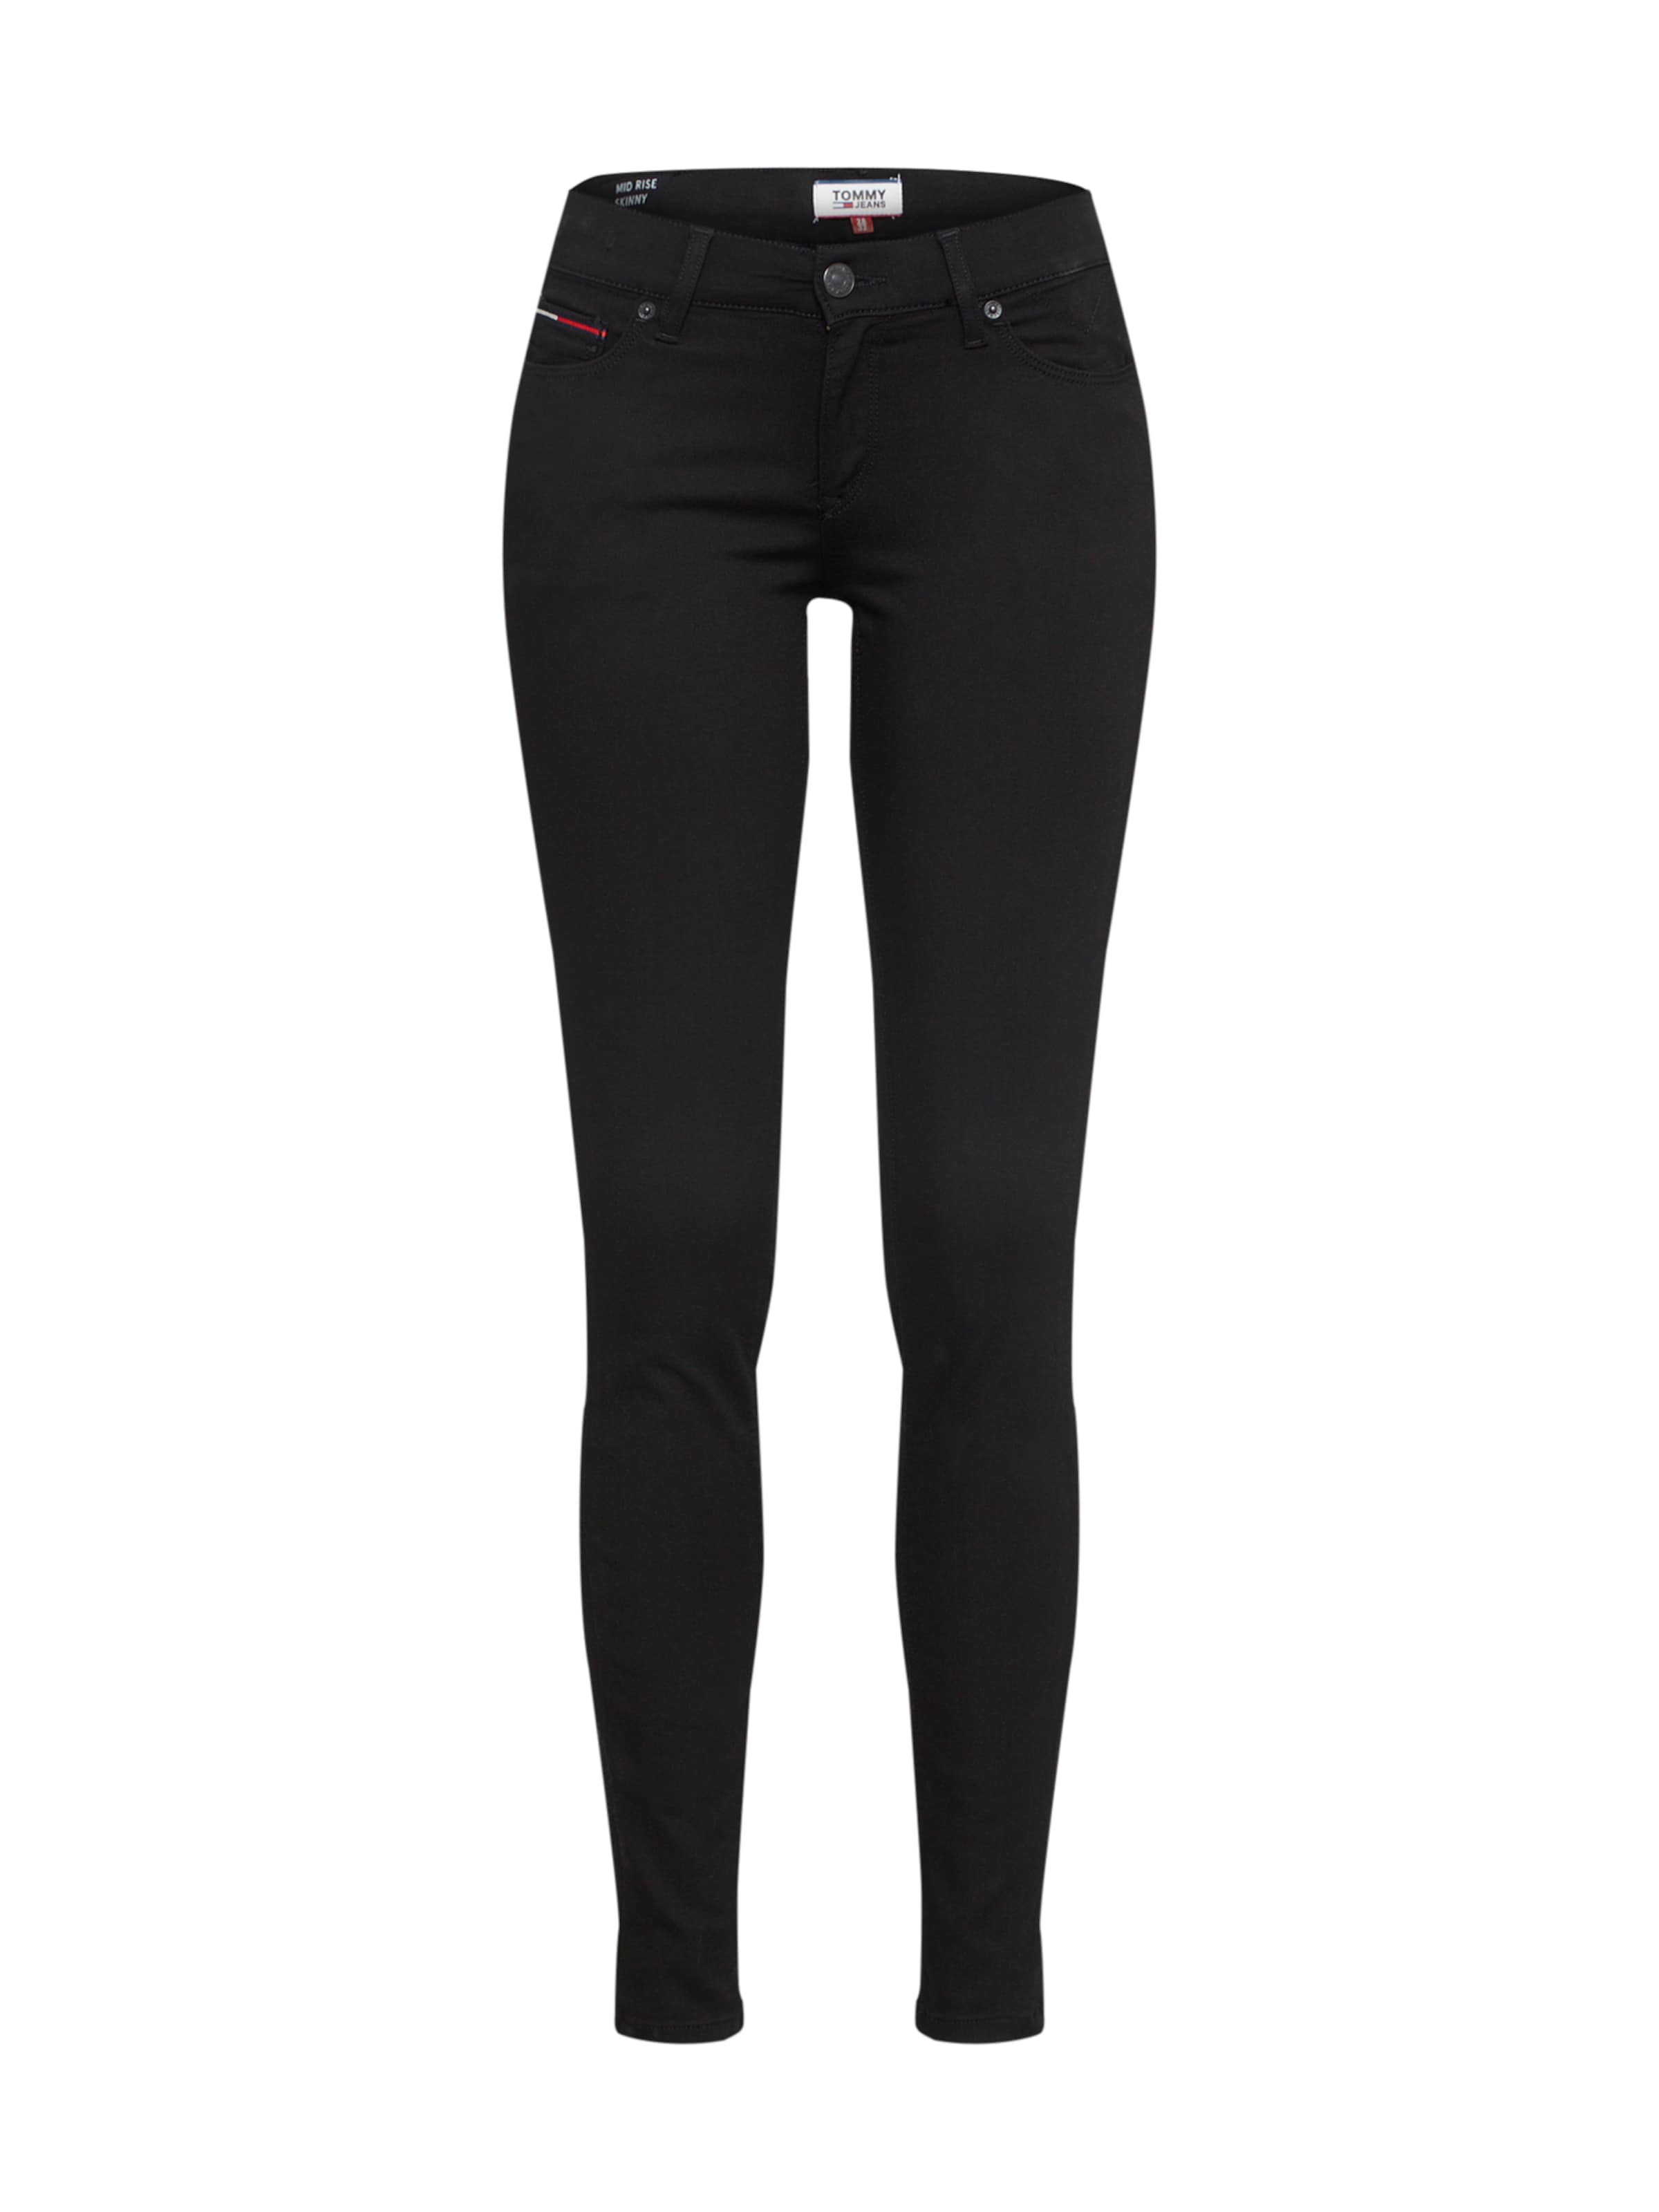 Black Jeans ' Tommy In Denim 'nora 5qR3AL4j